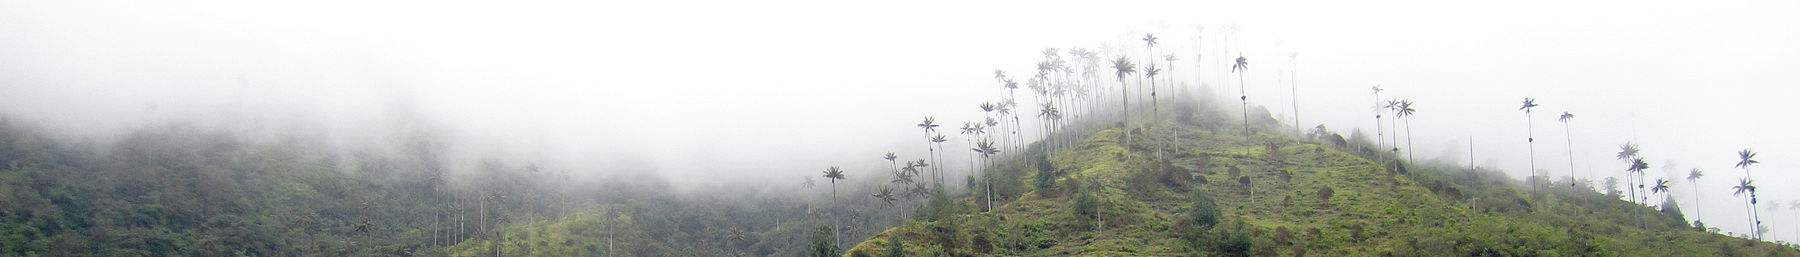 Wax palms in the clouds